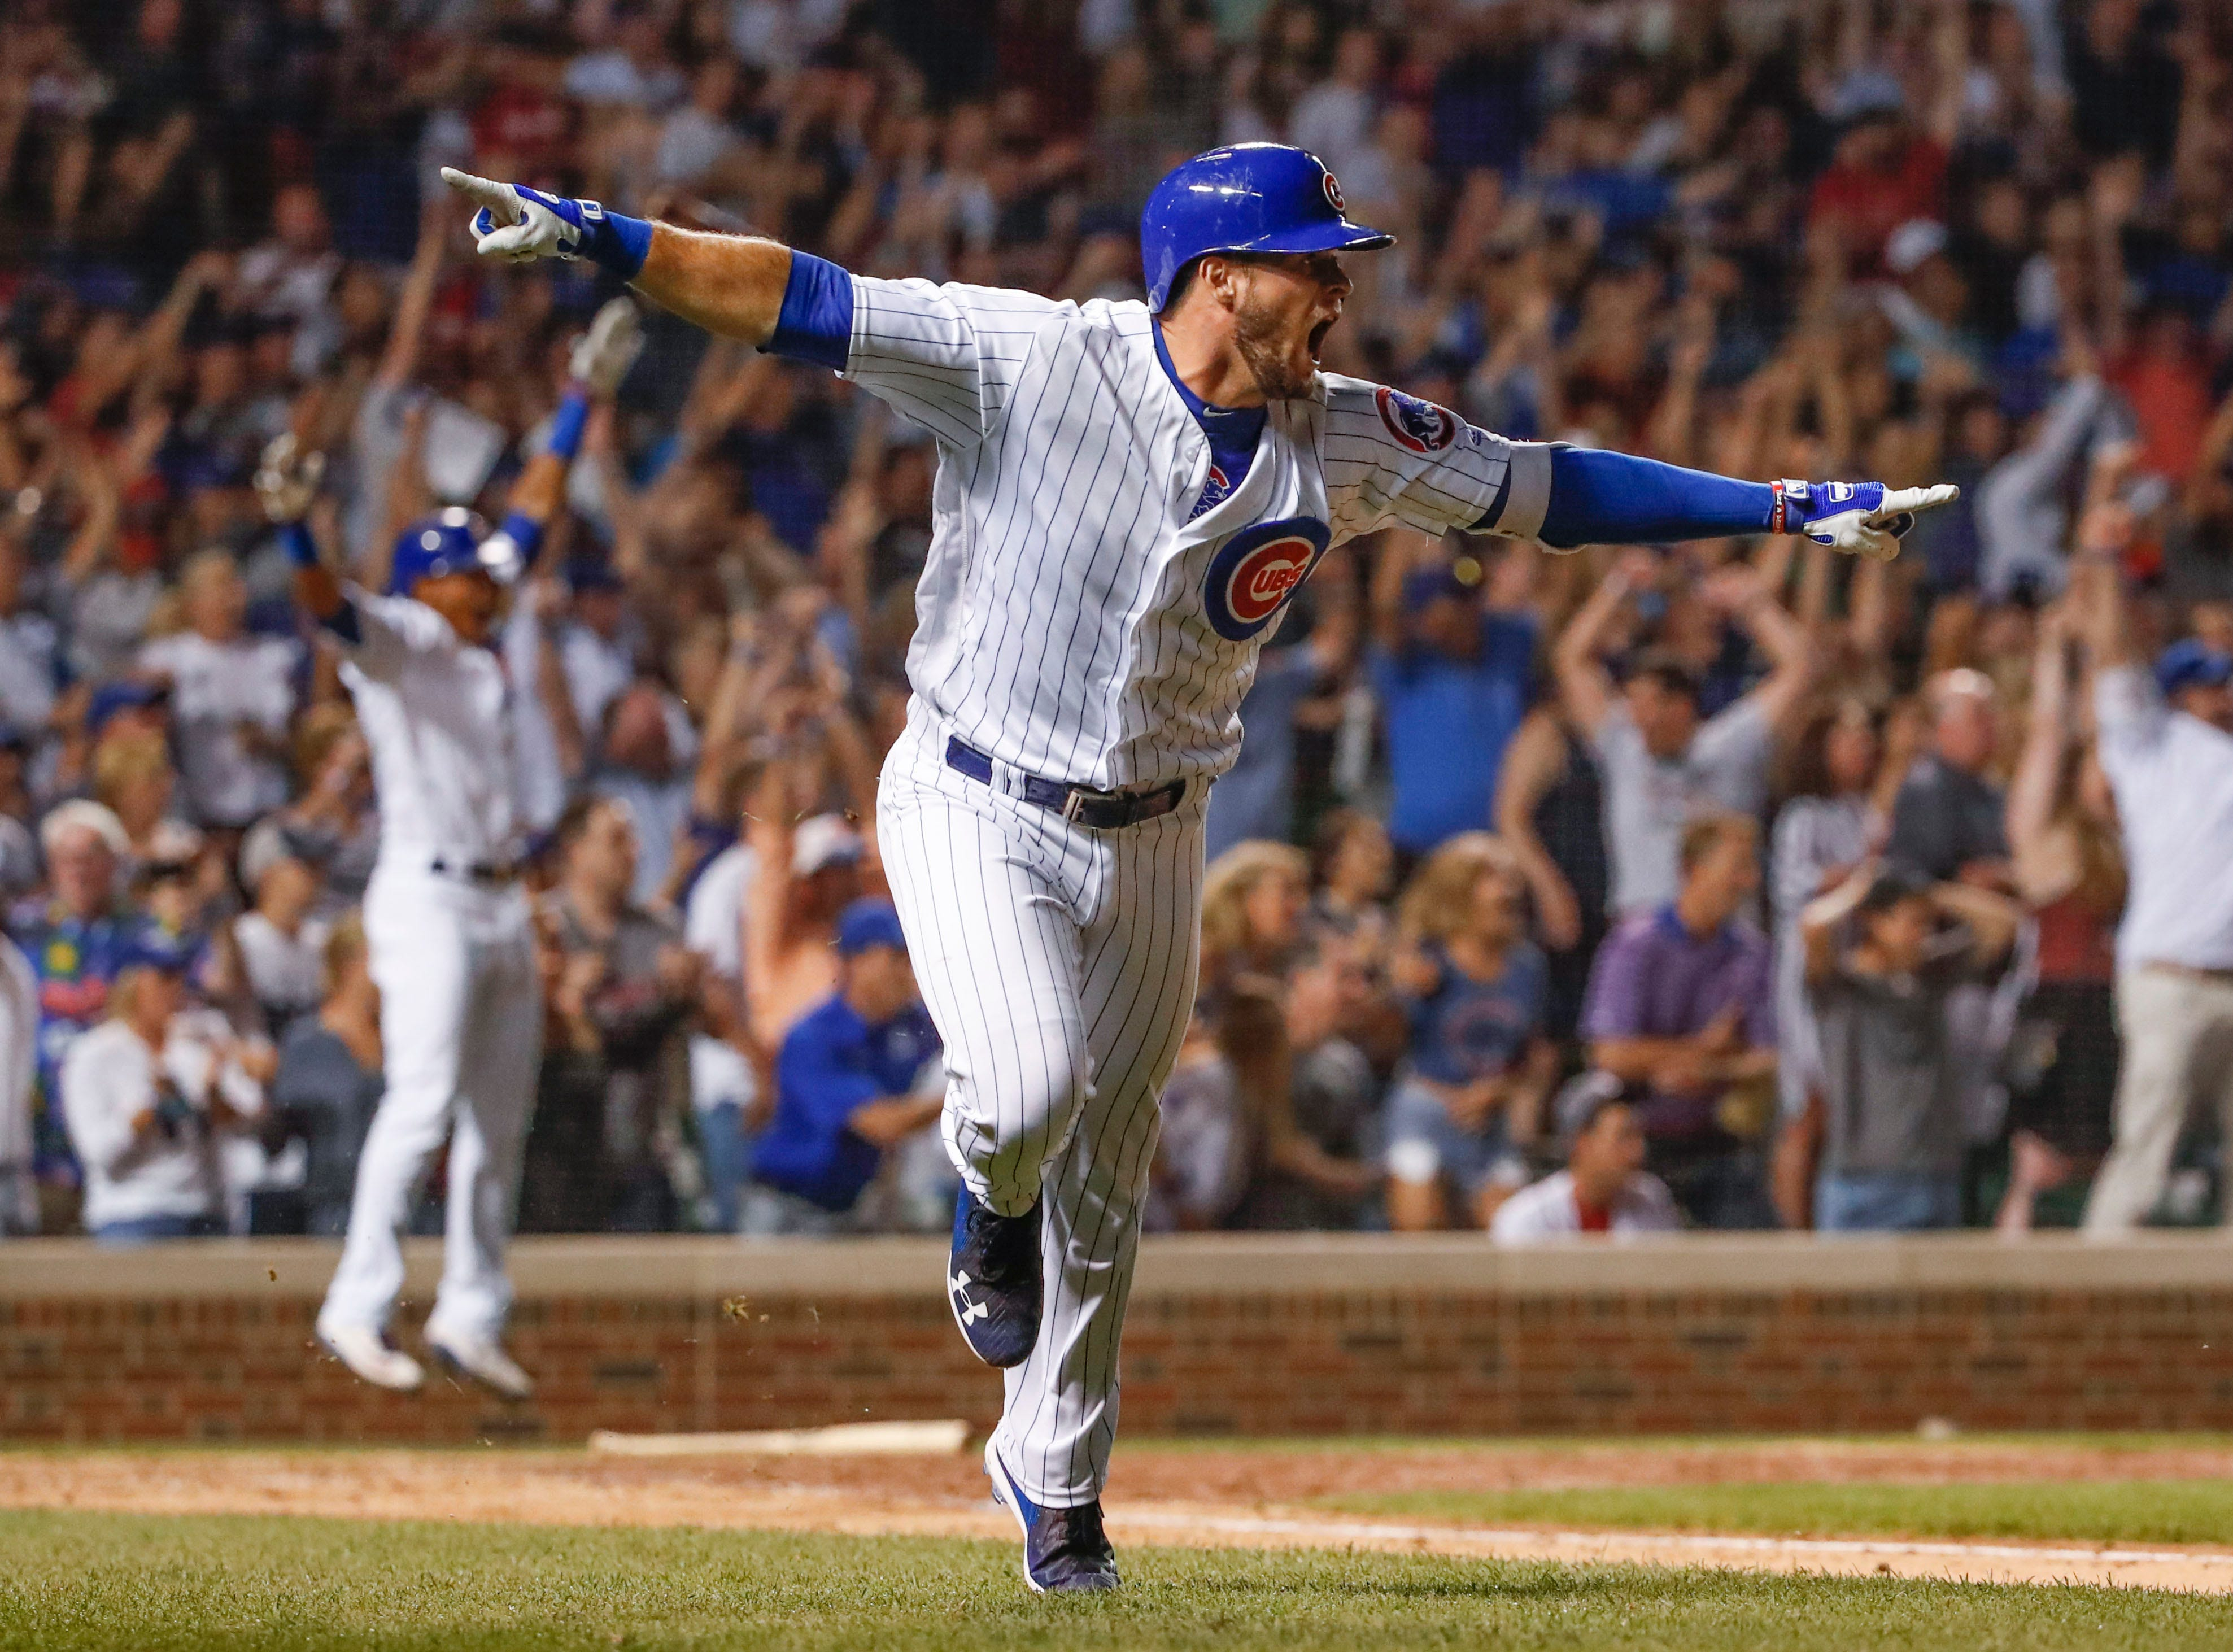 Aug. 12: Chicago Cubs third baseman David Bote rounds the bases after hitting a walk-off grand slam against the Washington Nationals at Wrigley Field.